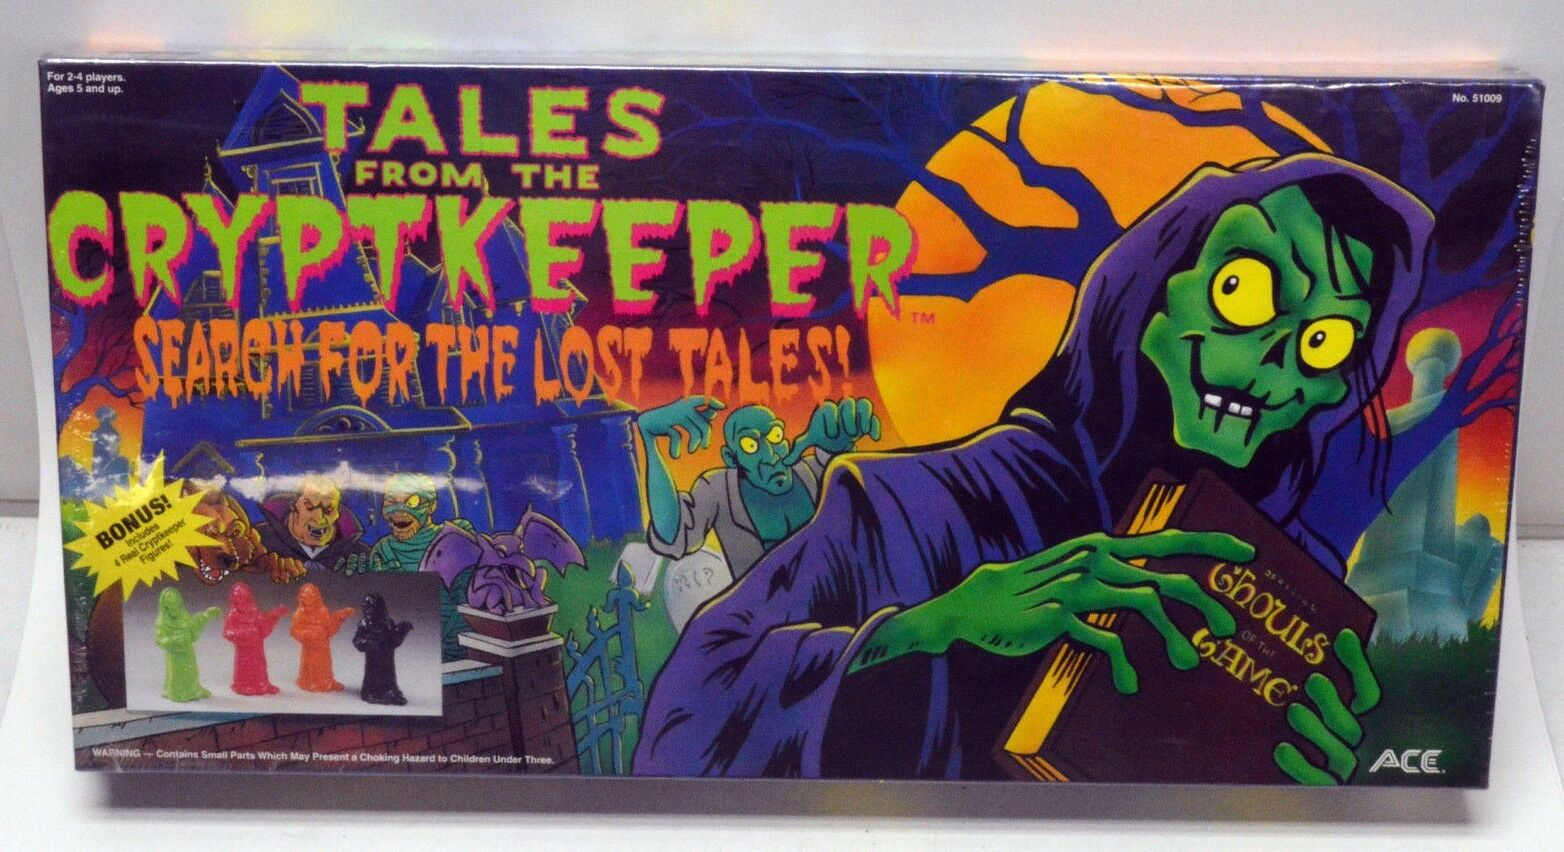 Tales From The Cryptkeeper Search for the Lost Tales ACE jeux 1994 encore scellé